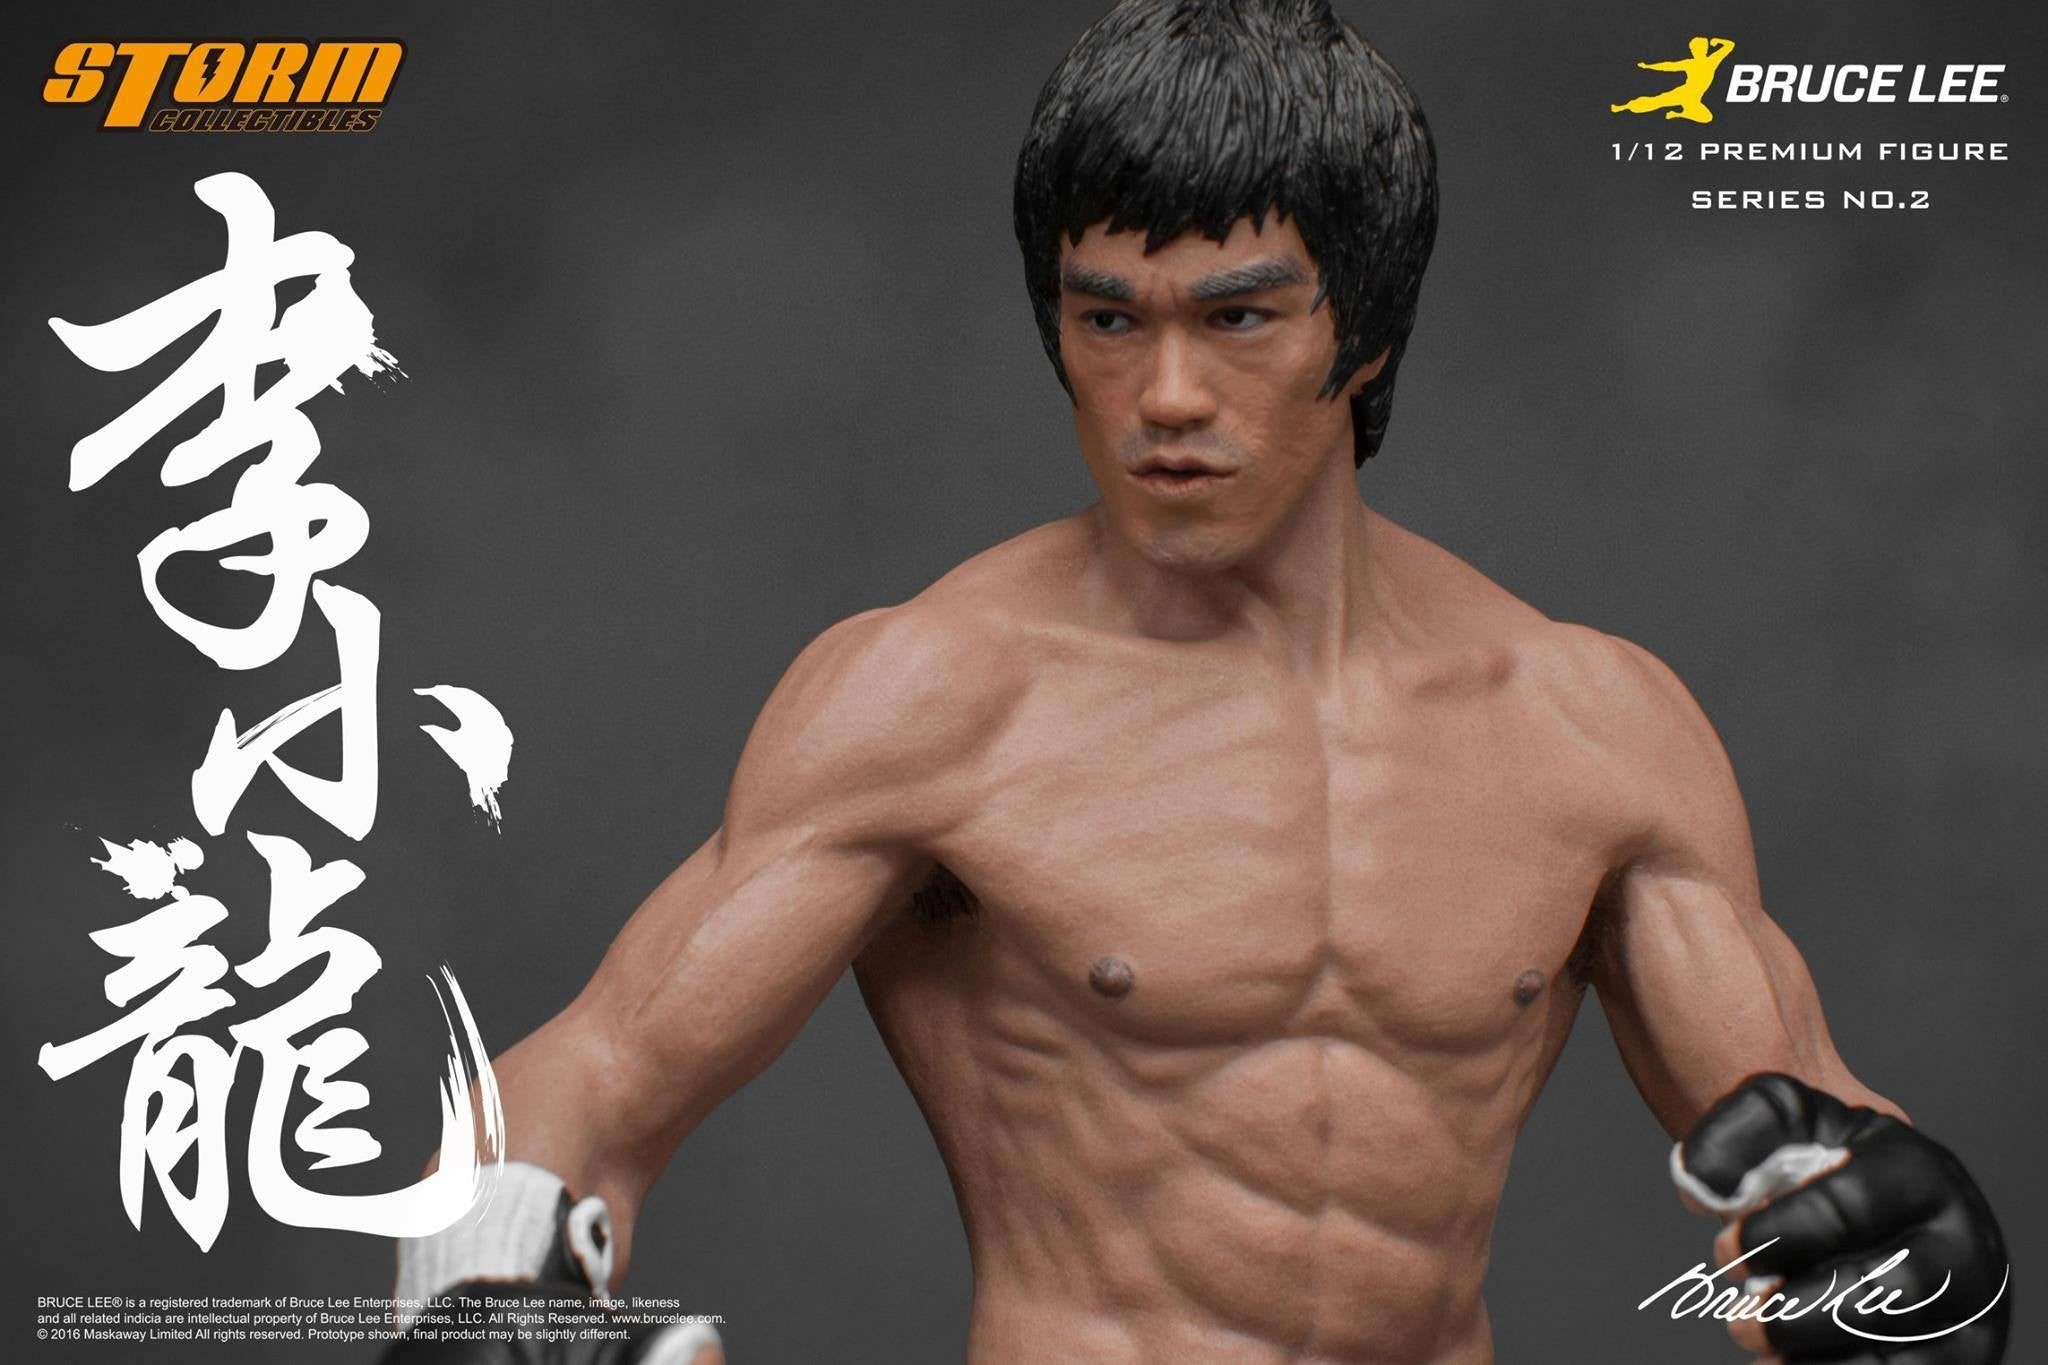 Storm Collectibles - 1/12th Scale Premium Figure - Bruce Lee The Martial Artist Series No.2 - Marvelous Toys - 6